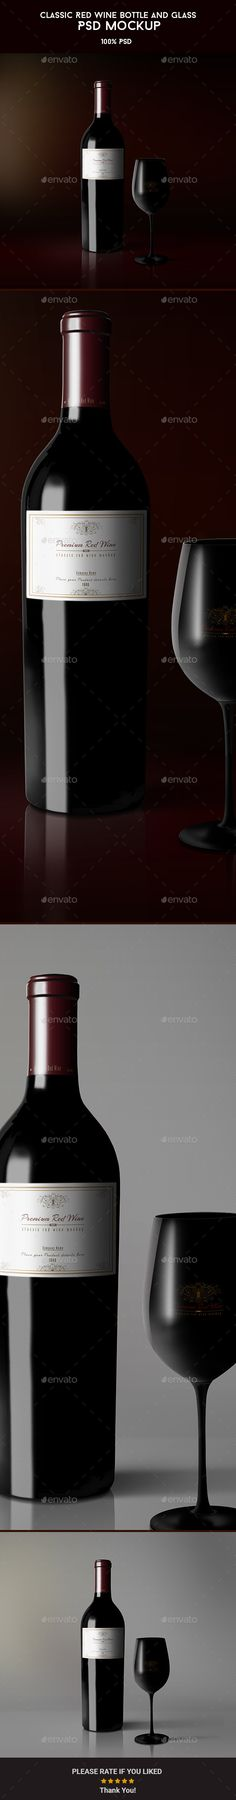 Classic Red Wine Bottle and Glass Mockup #design Download: http://graphicriver.net/item/classic-red-wine-bottle-and-glass-mockup/11252347?ref=ksioks